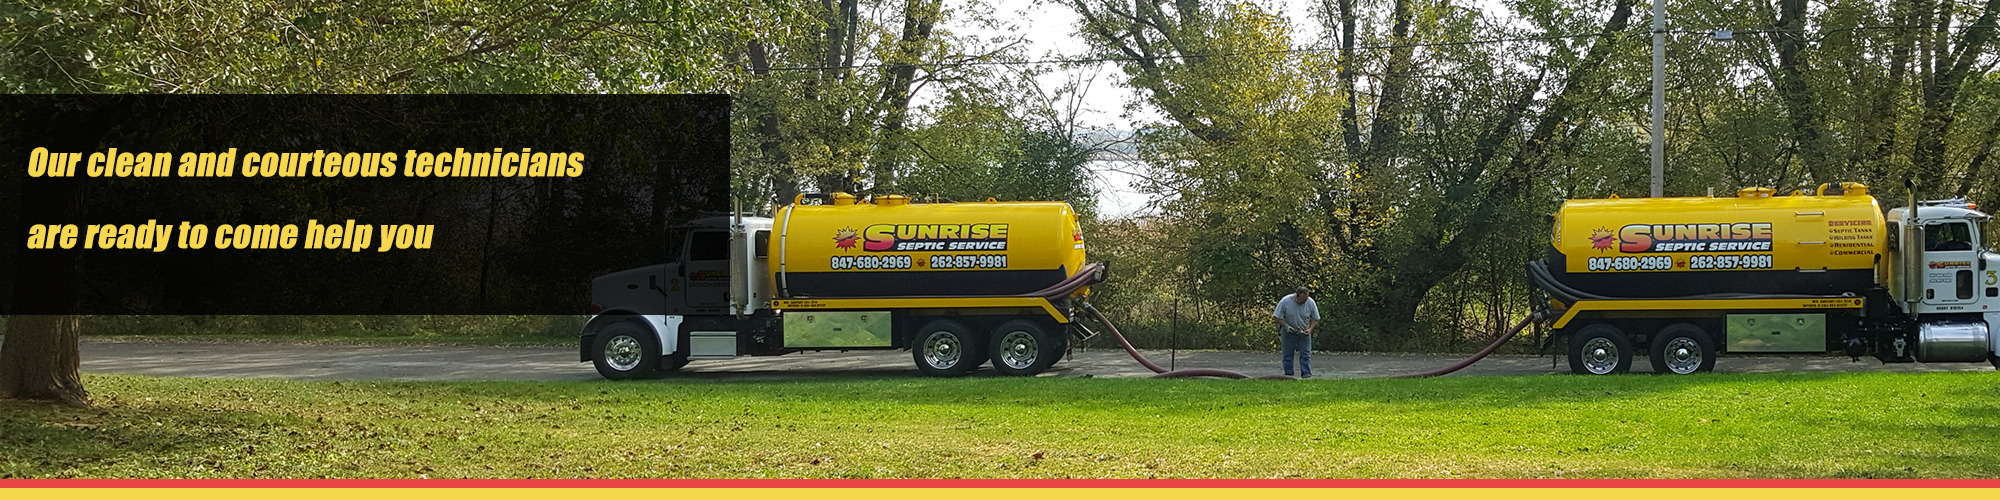 Sunrise Septic Trucks | Septic Services in Spring Grove | Pumping and Repair